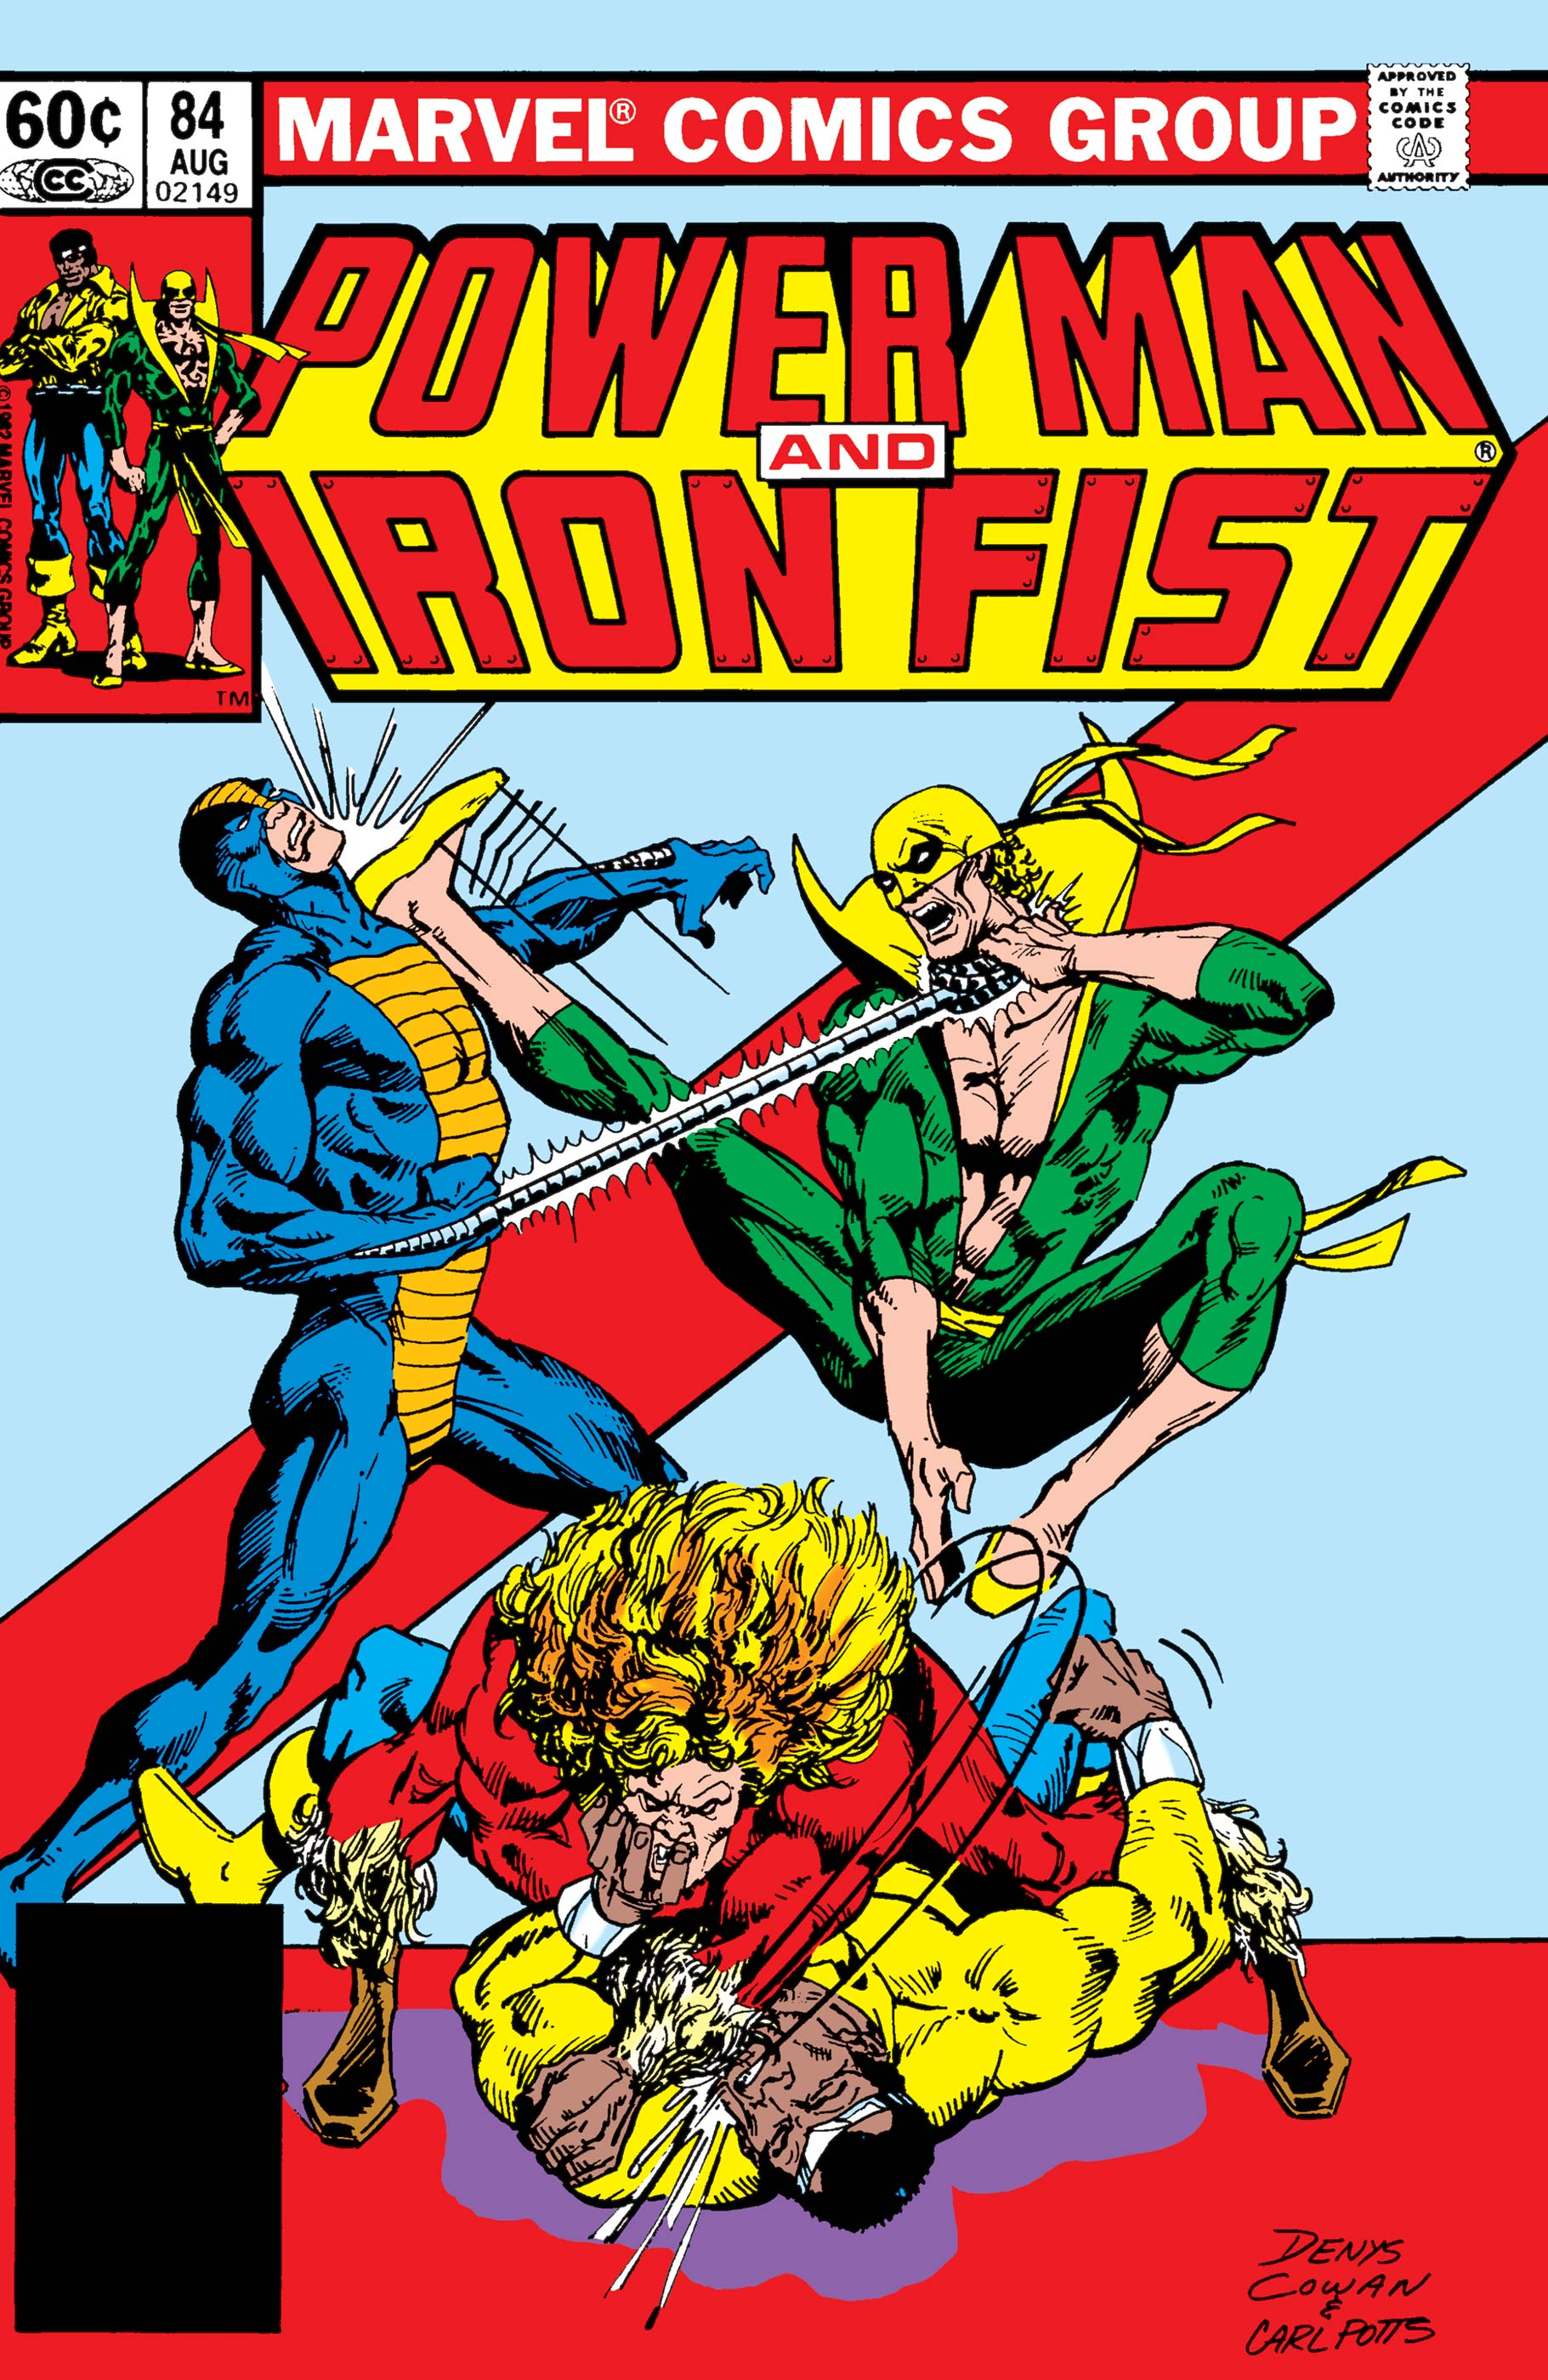 Power Man and Iron Fist (1978) #84